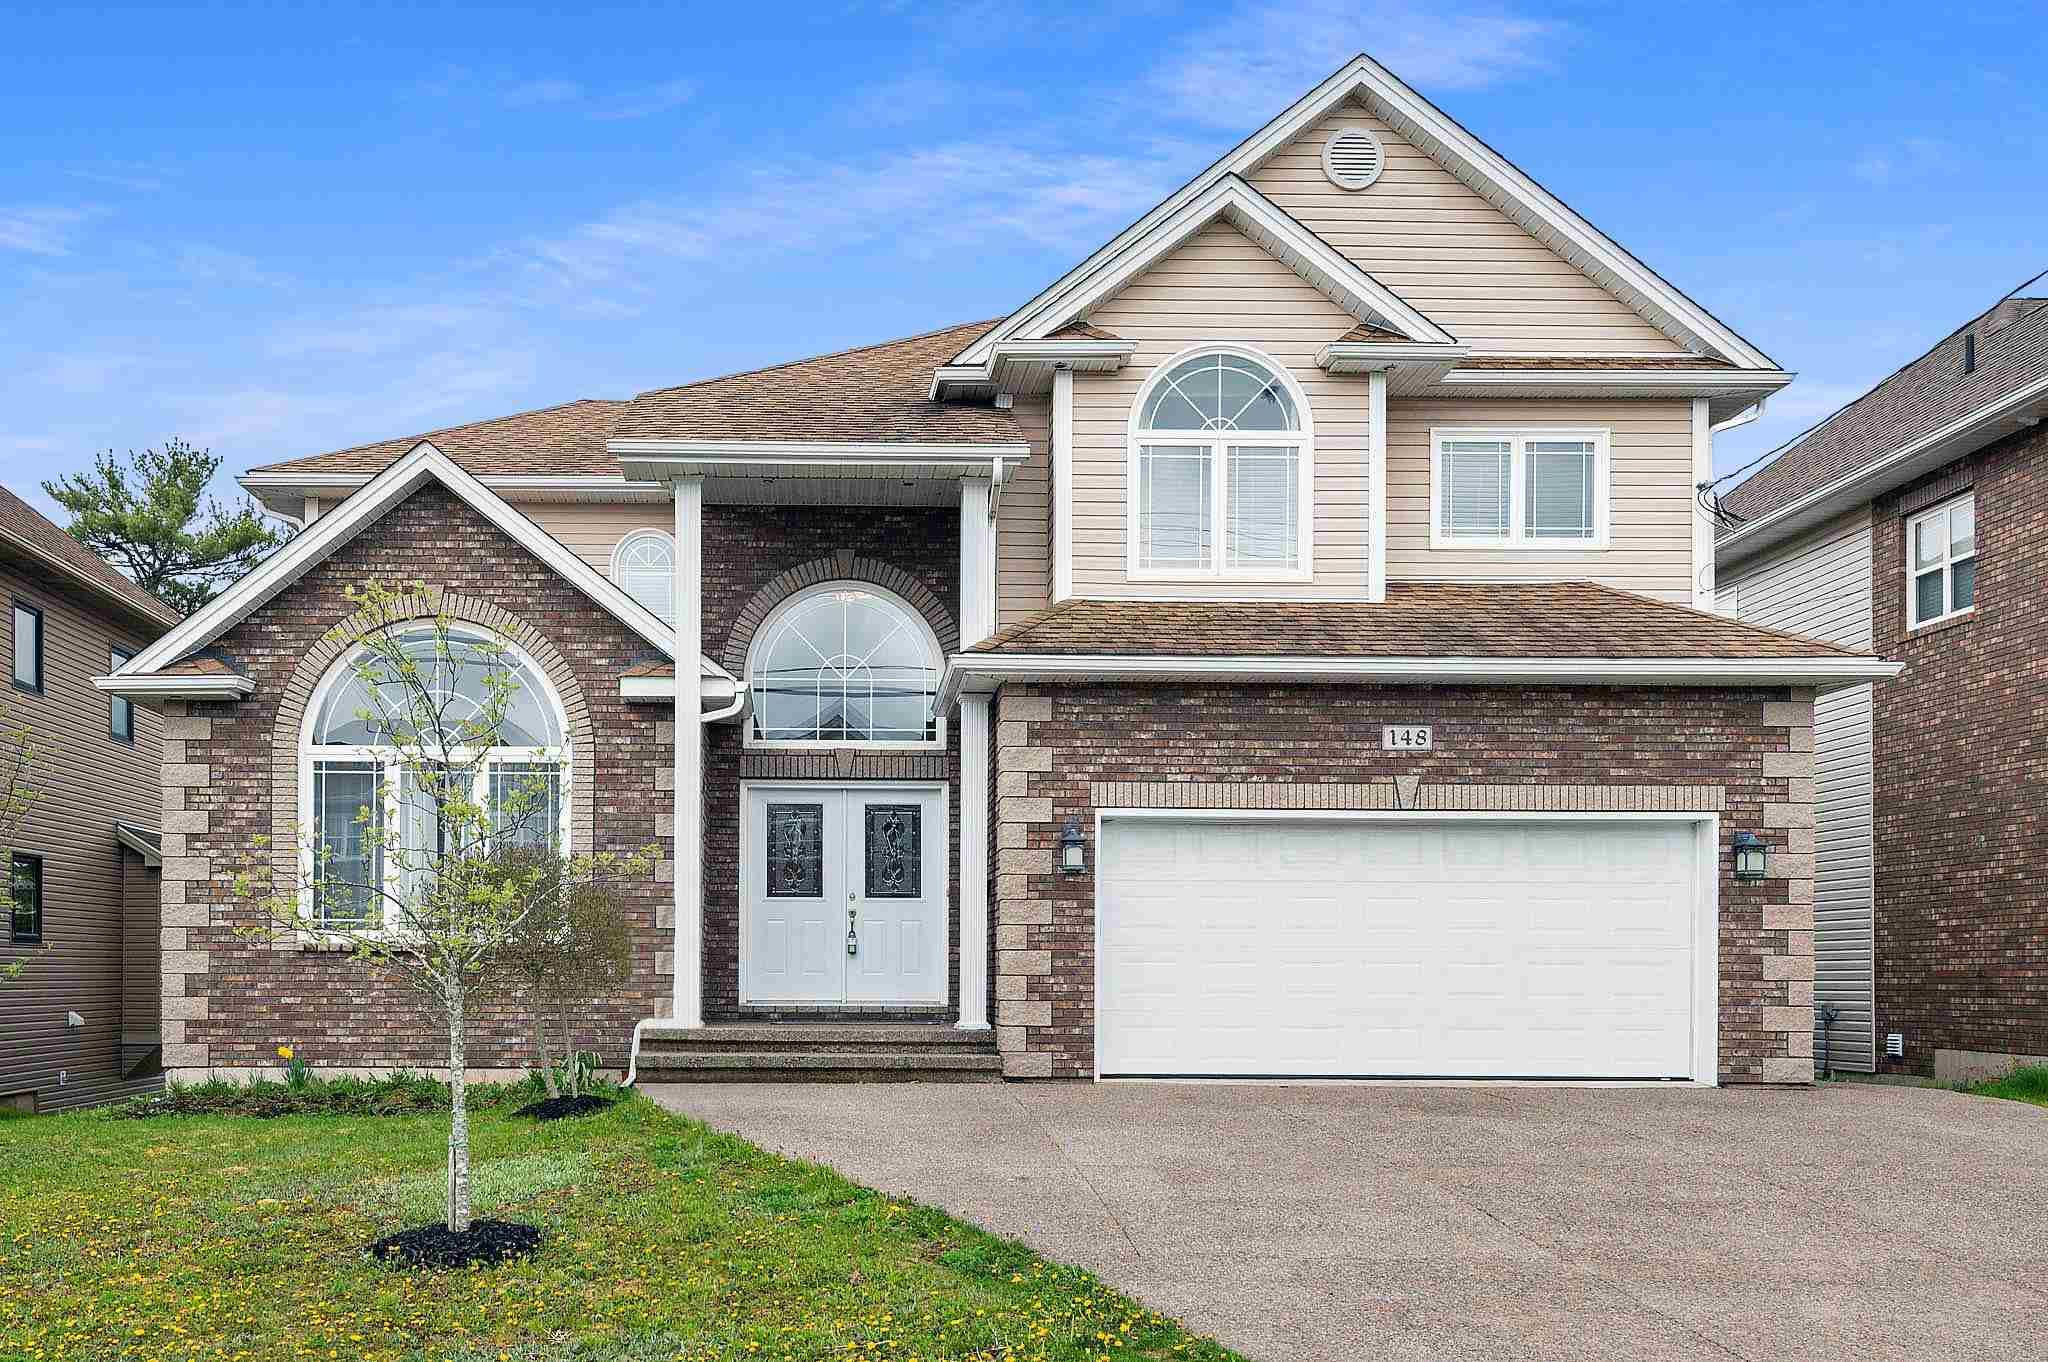 Main Photo: 148 Ravines Drive in Bedford: 20-Bedford Residential for sale (Halifax-Dartmouth)  : MLS®# 202111780